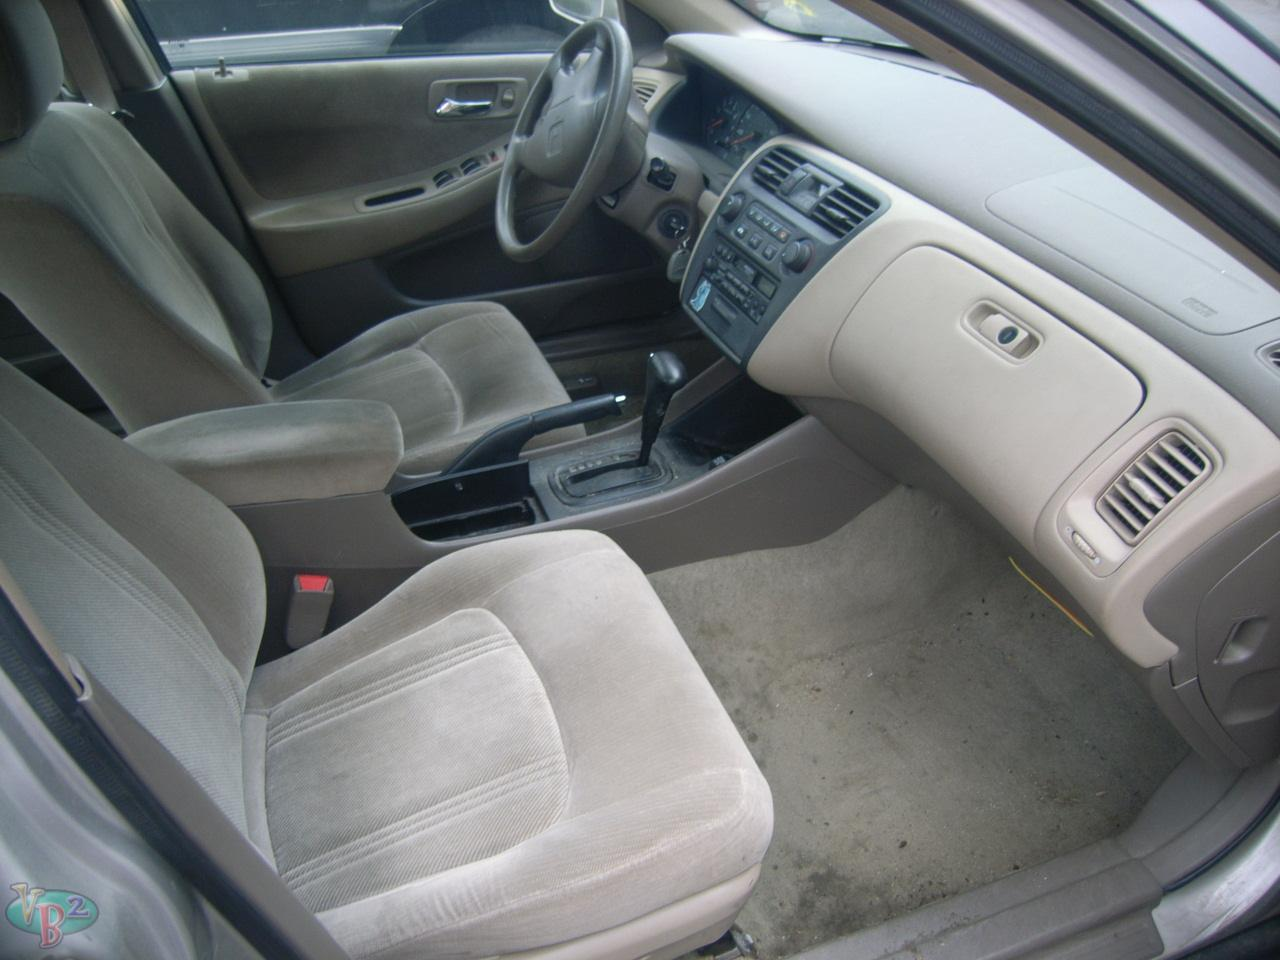 2010 Honda Accord Lx >> ***SOLD SOLD SOLD *** Used 1999 Honda Accord Lx Up For Grabs - Autos - Nigeria